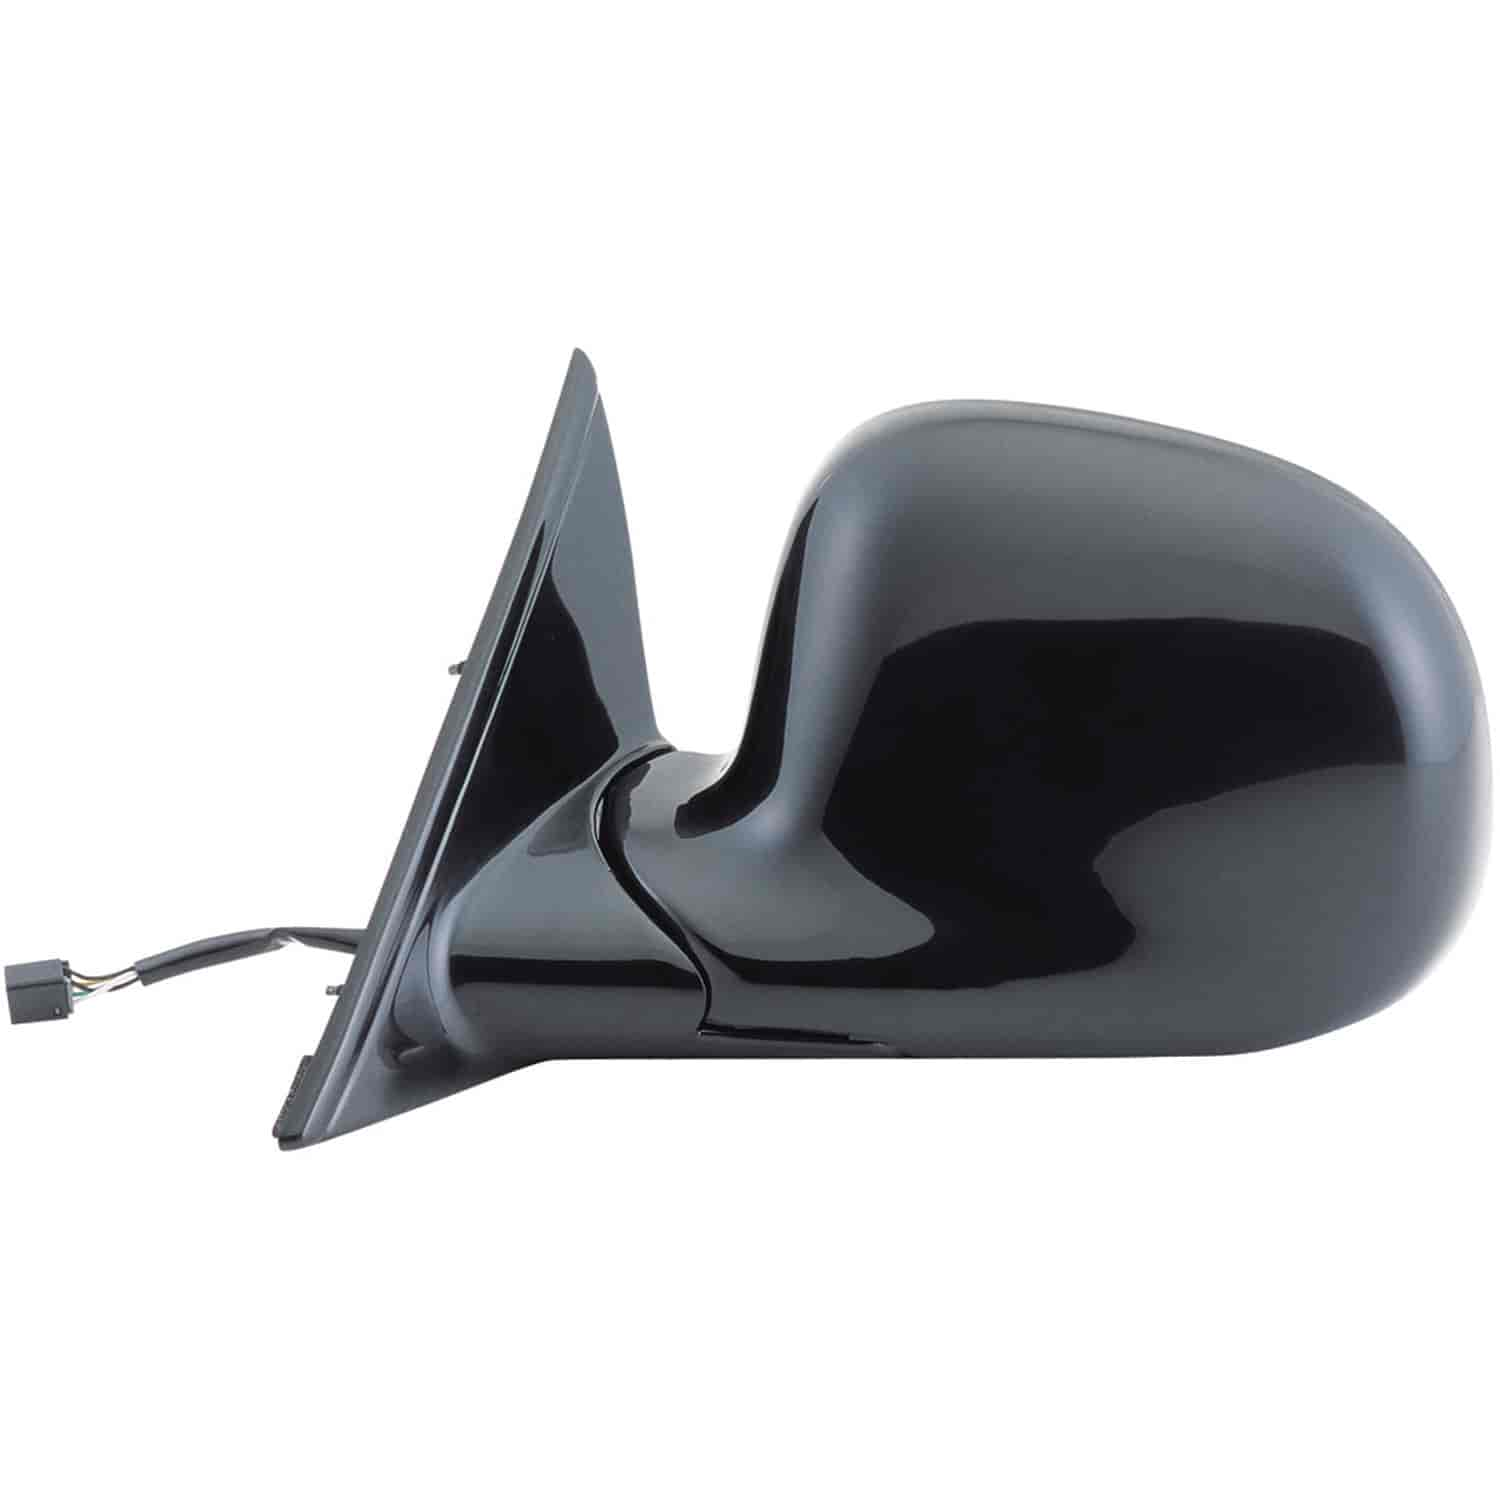 K Source 62022g Oem Style Replacement Mirror For 95 98